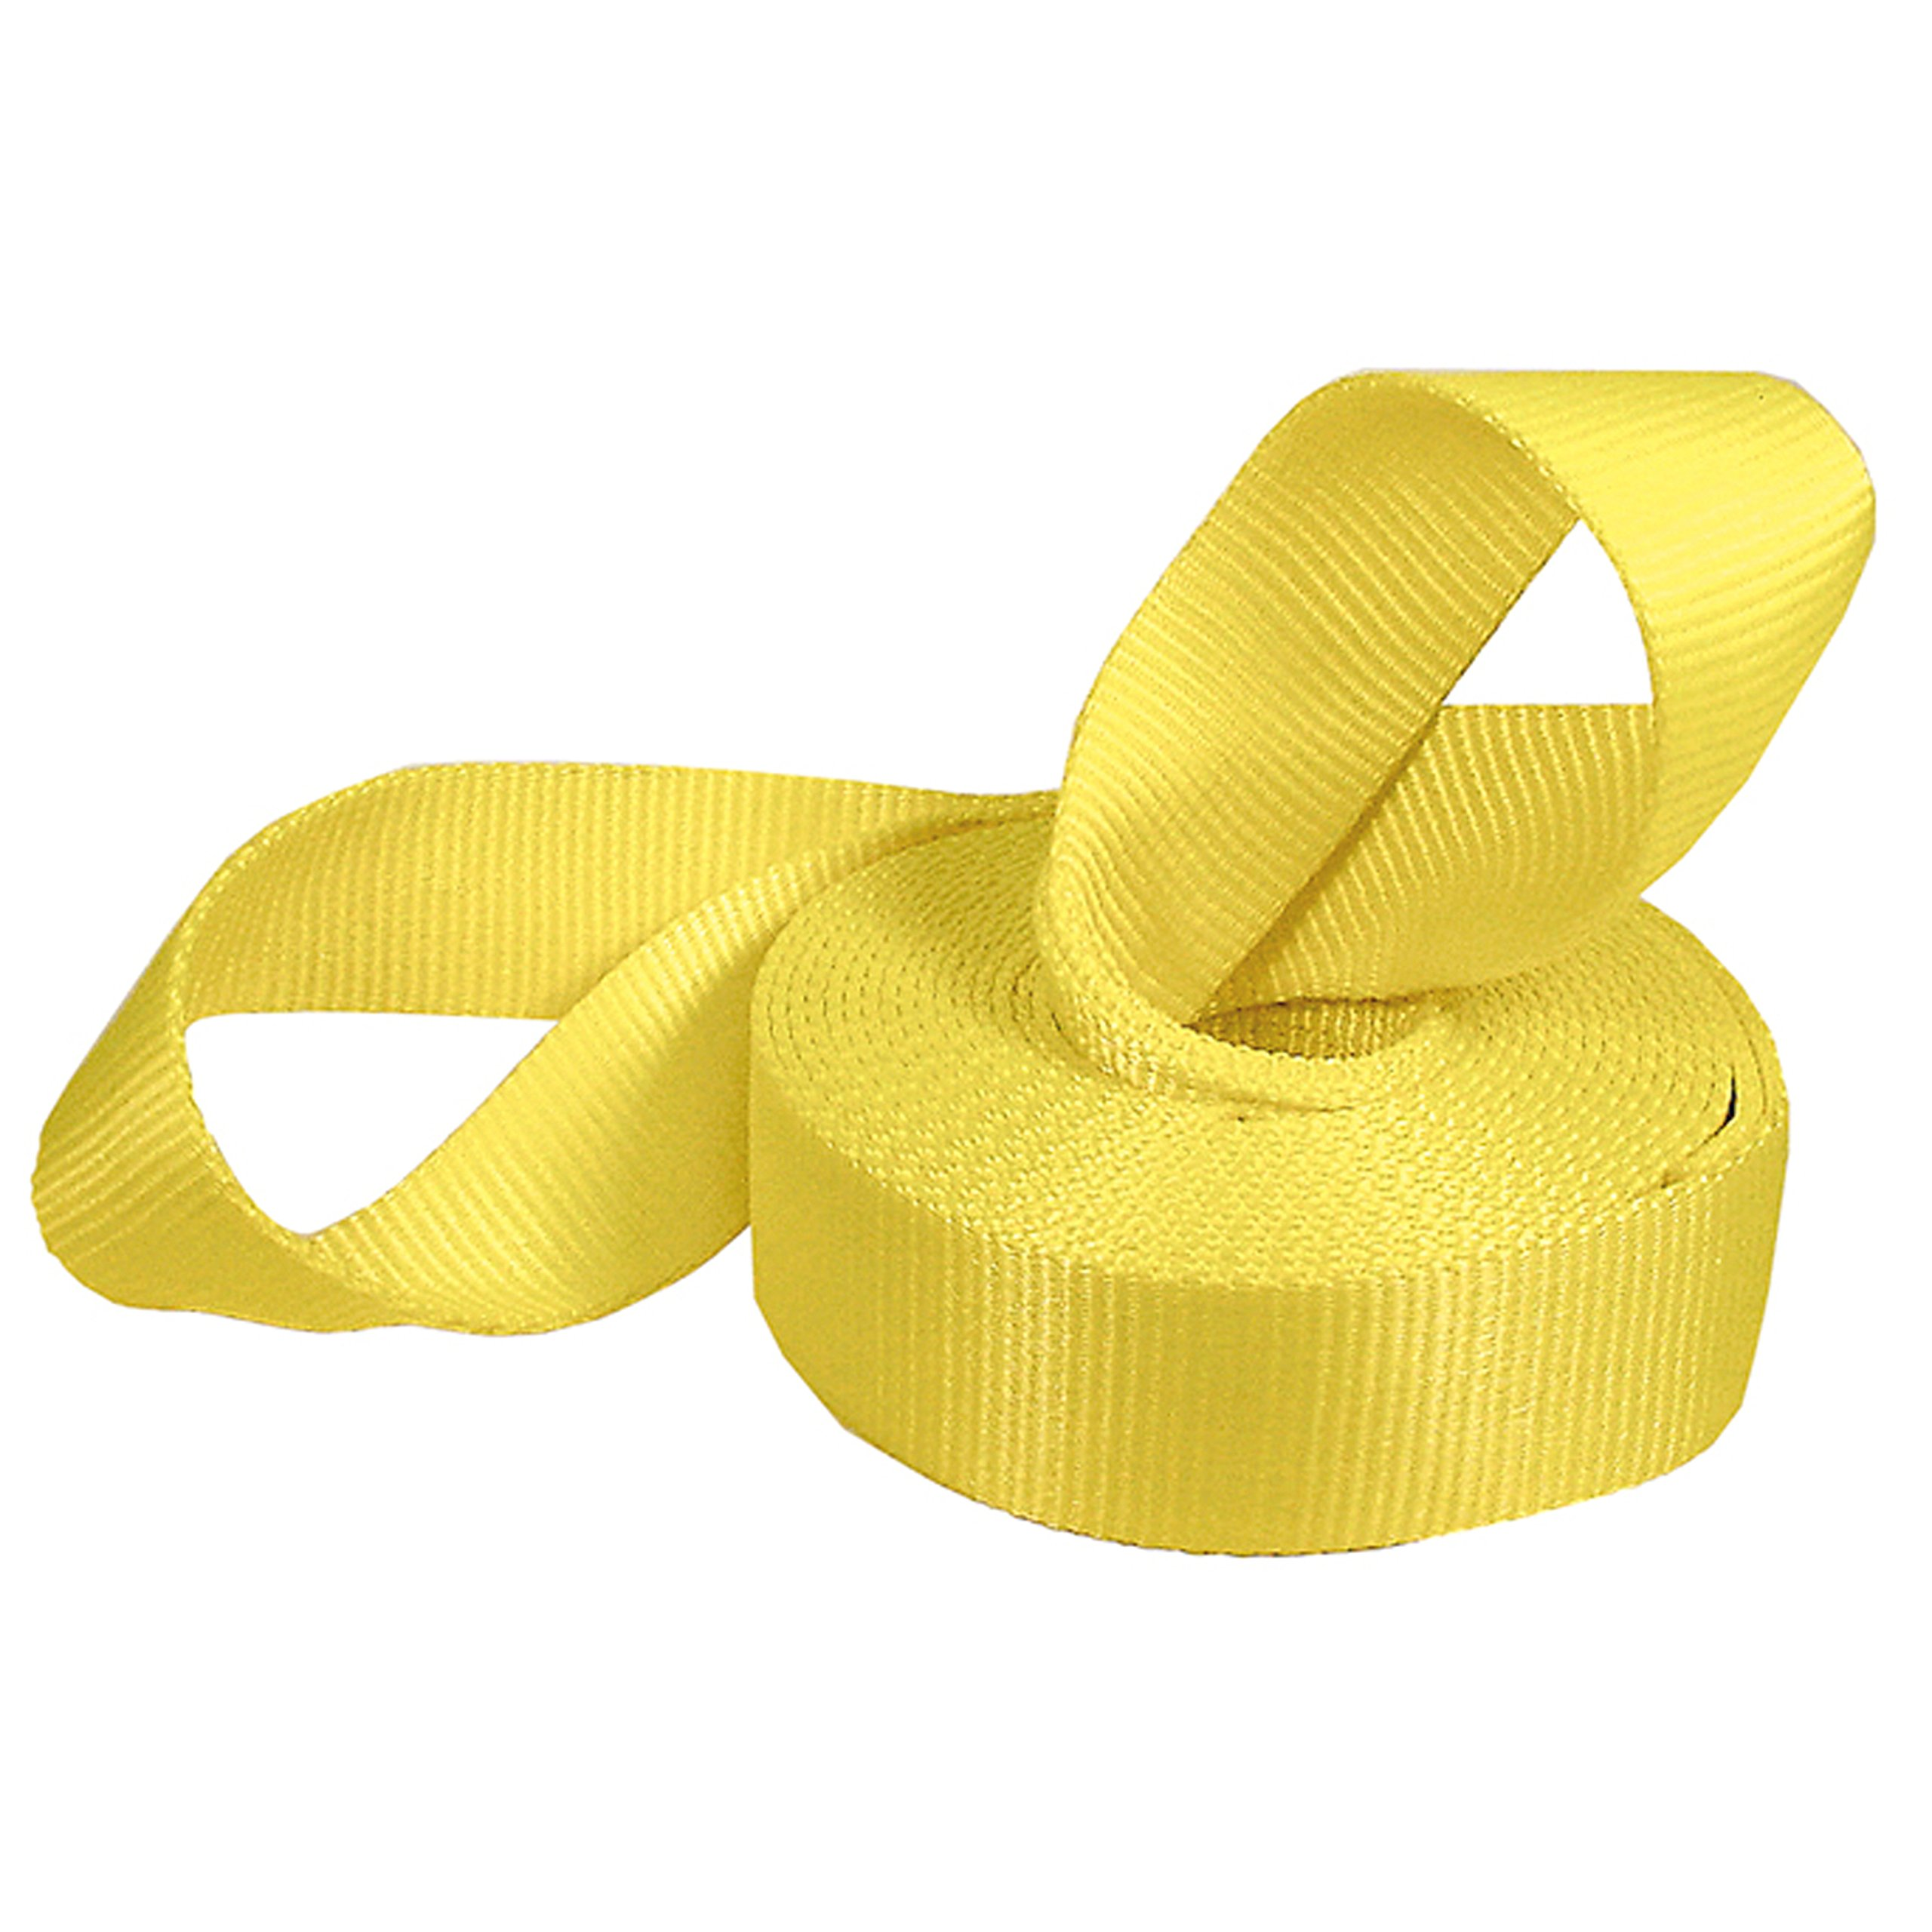 Keeper 02932 3'' x 20' Vehicle Recovery Strap, 22,500 lb Web Capacity by Keeper